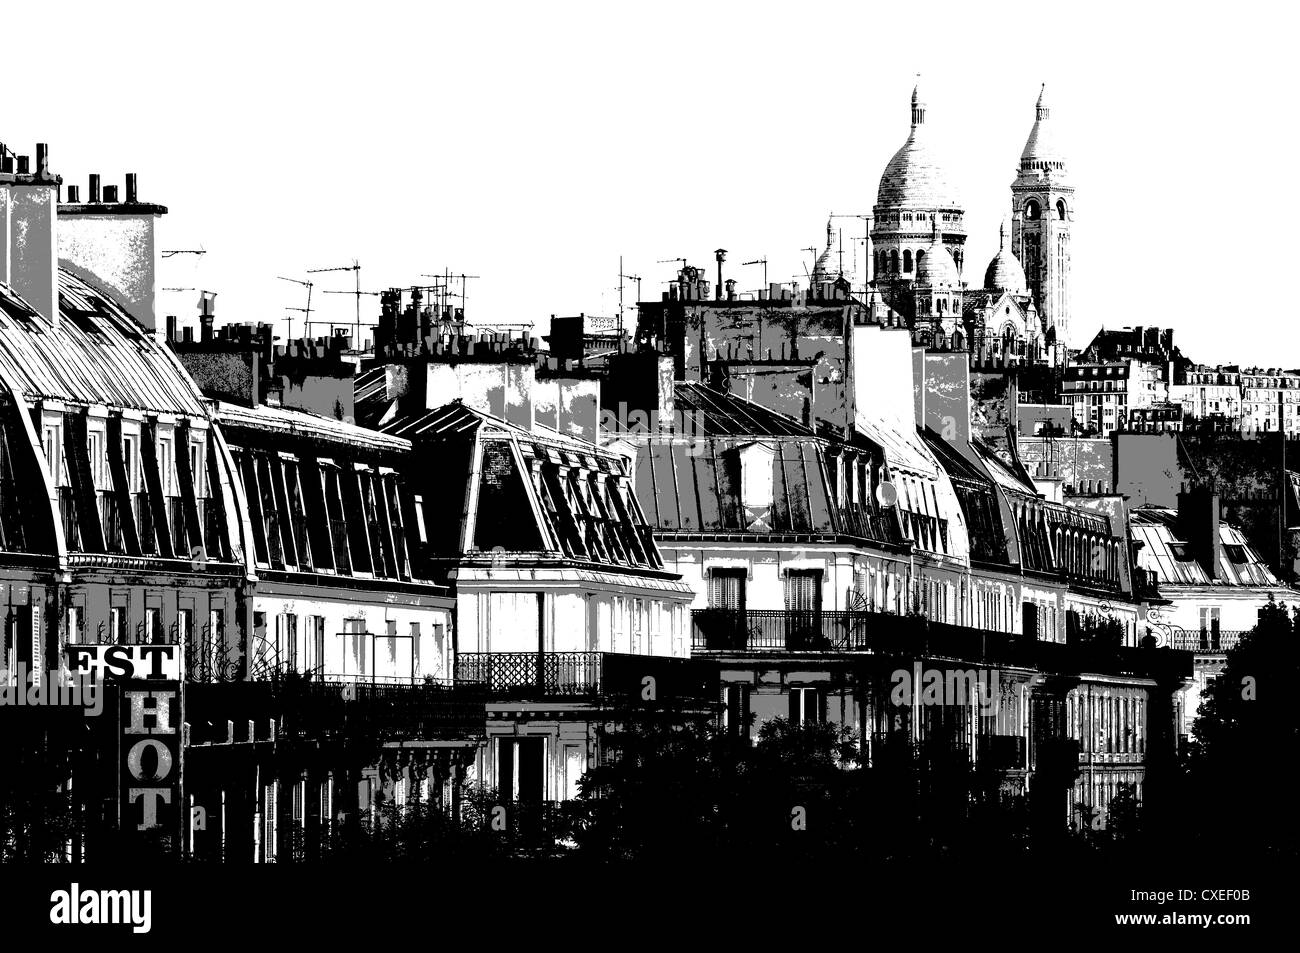 Paris, France. Sacre-Coeur and rooftops along Boulevard de Magenta. Posterized black and white - Stock Image